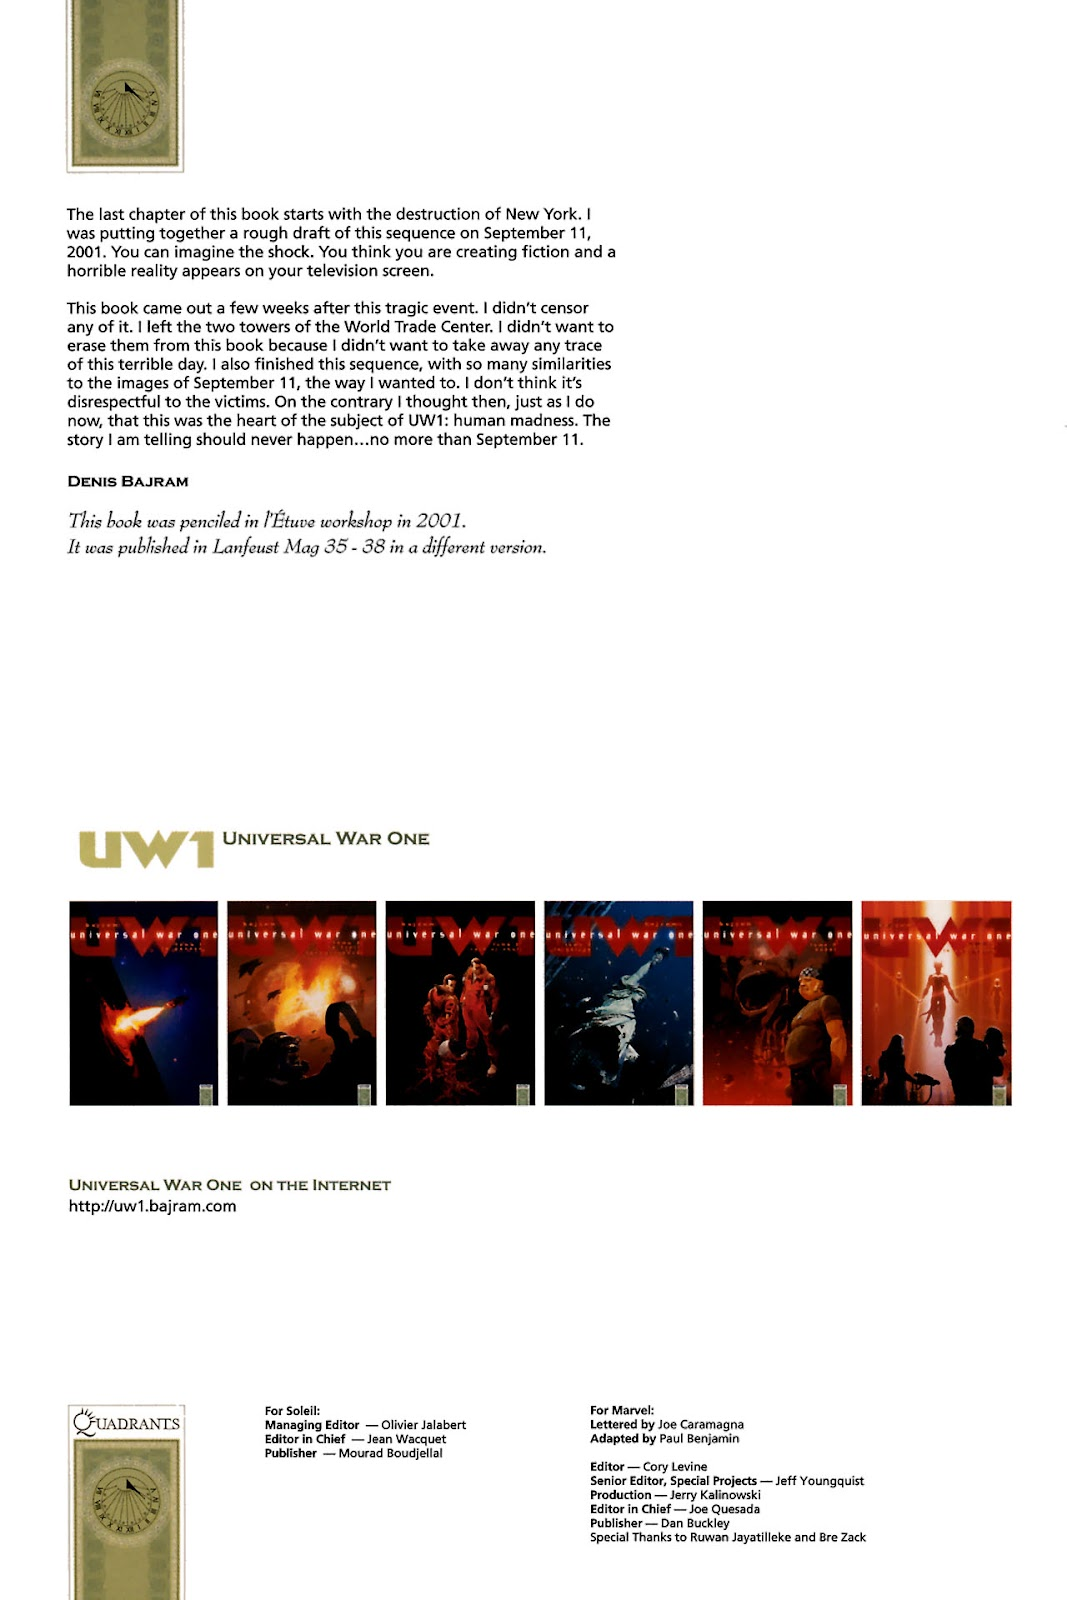 Read online Universal War One: Revelations comic -  Issue #1 - 5